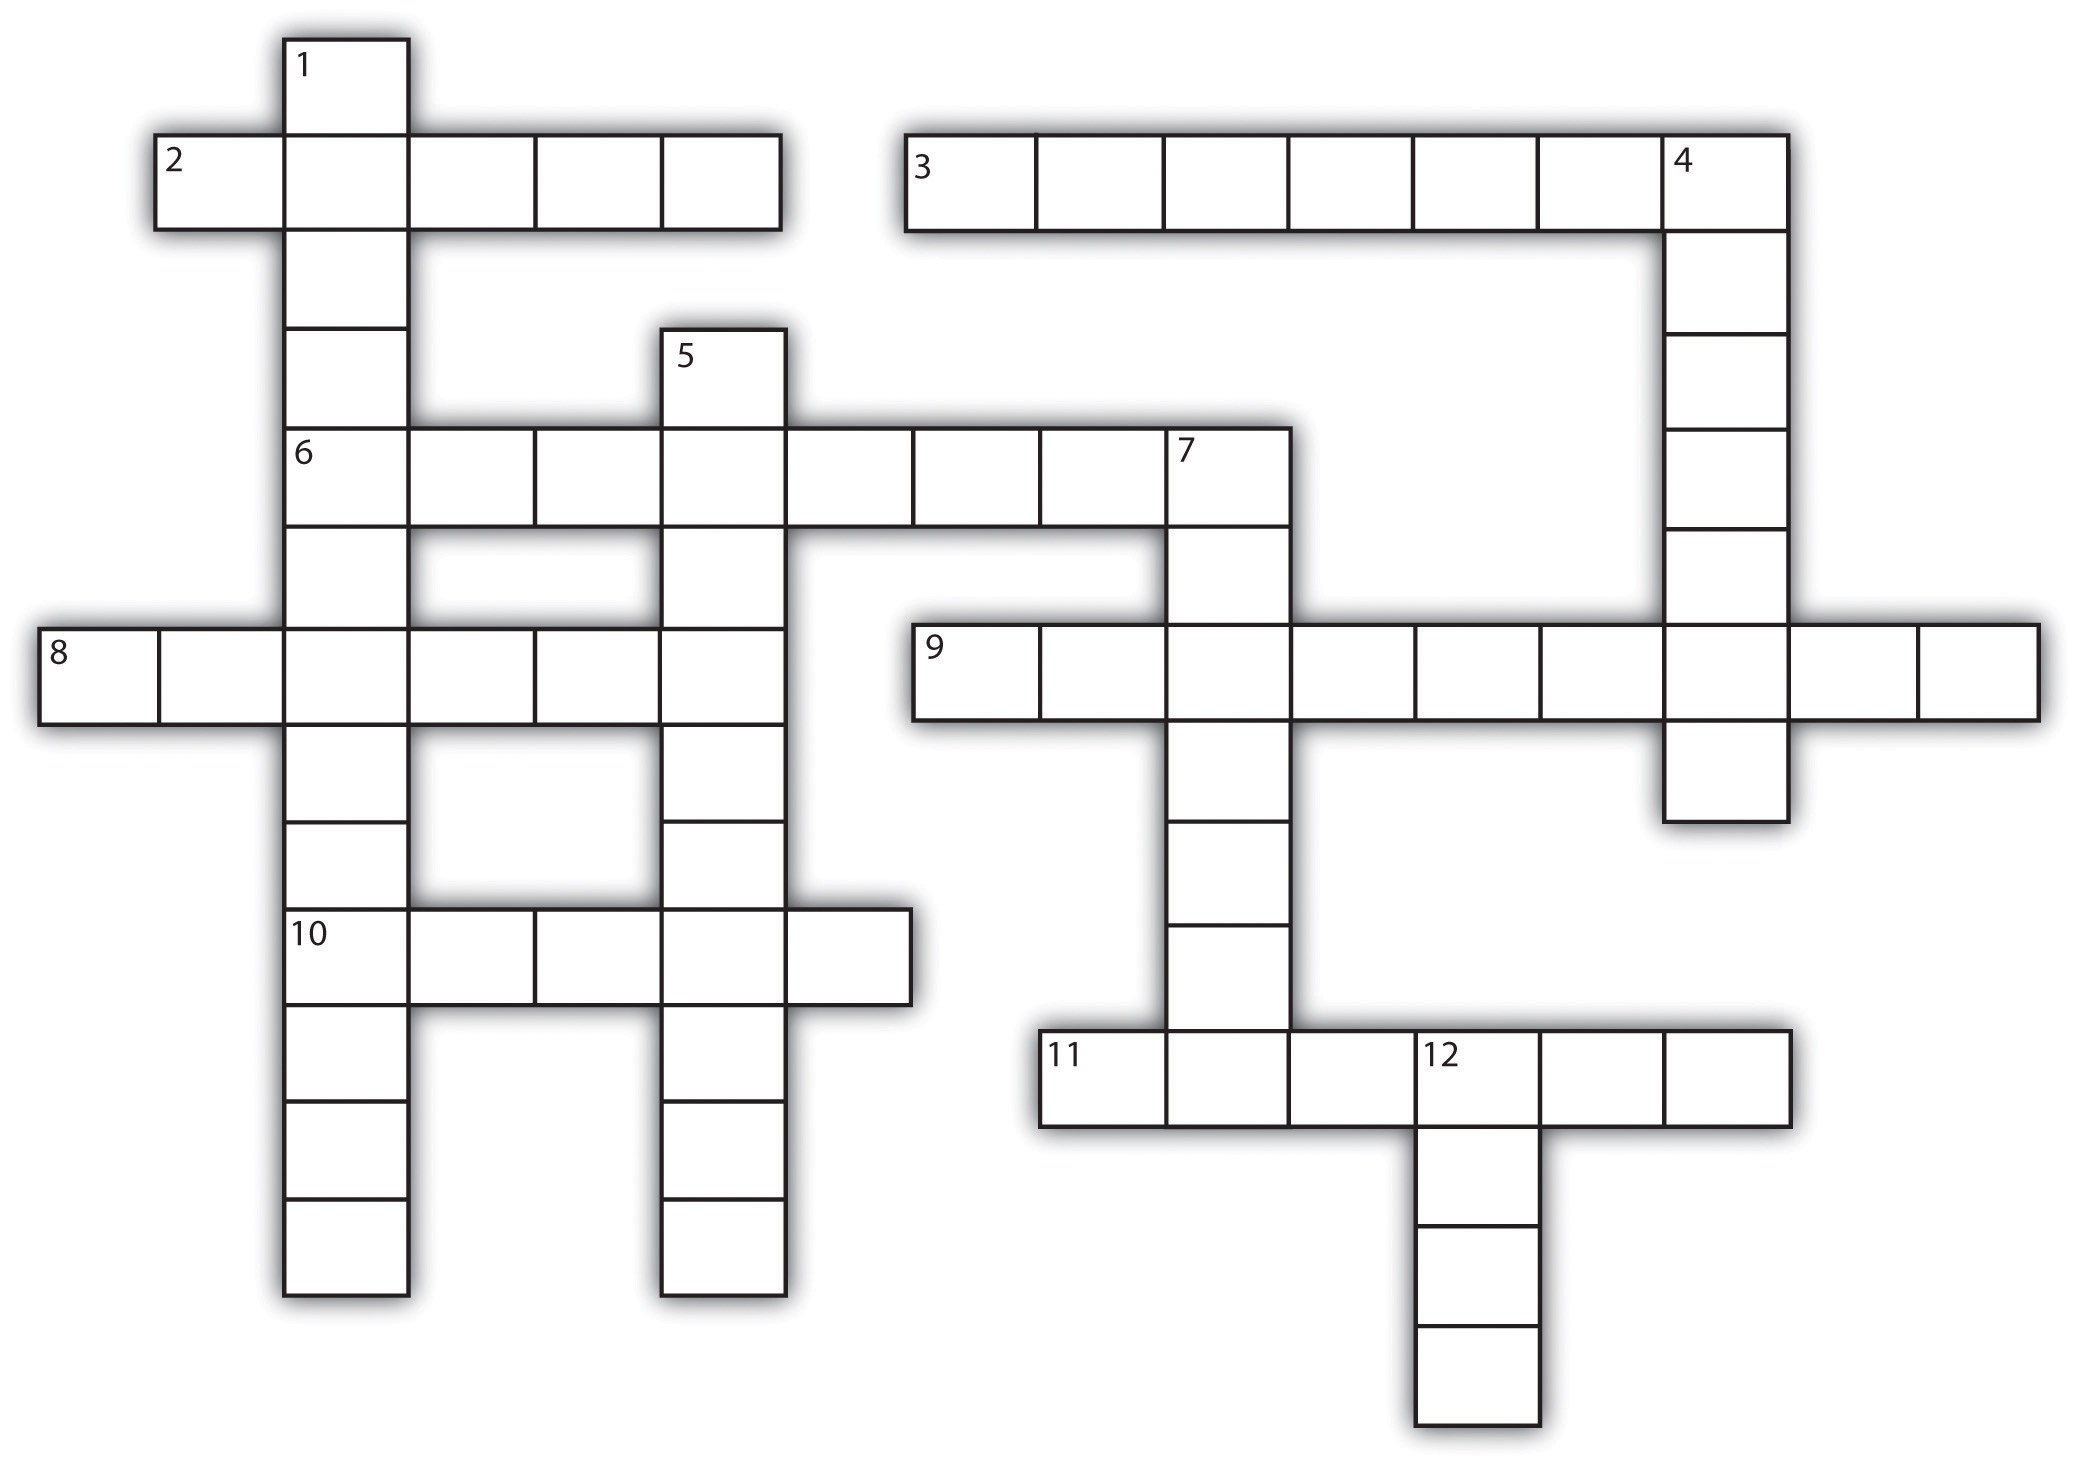 Template For Crossword Puzzle. Crossword Template Daily Dose Of - Printable Blank Crossword Puzzle Template